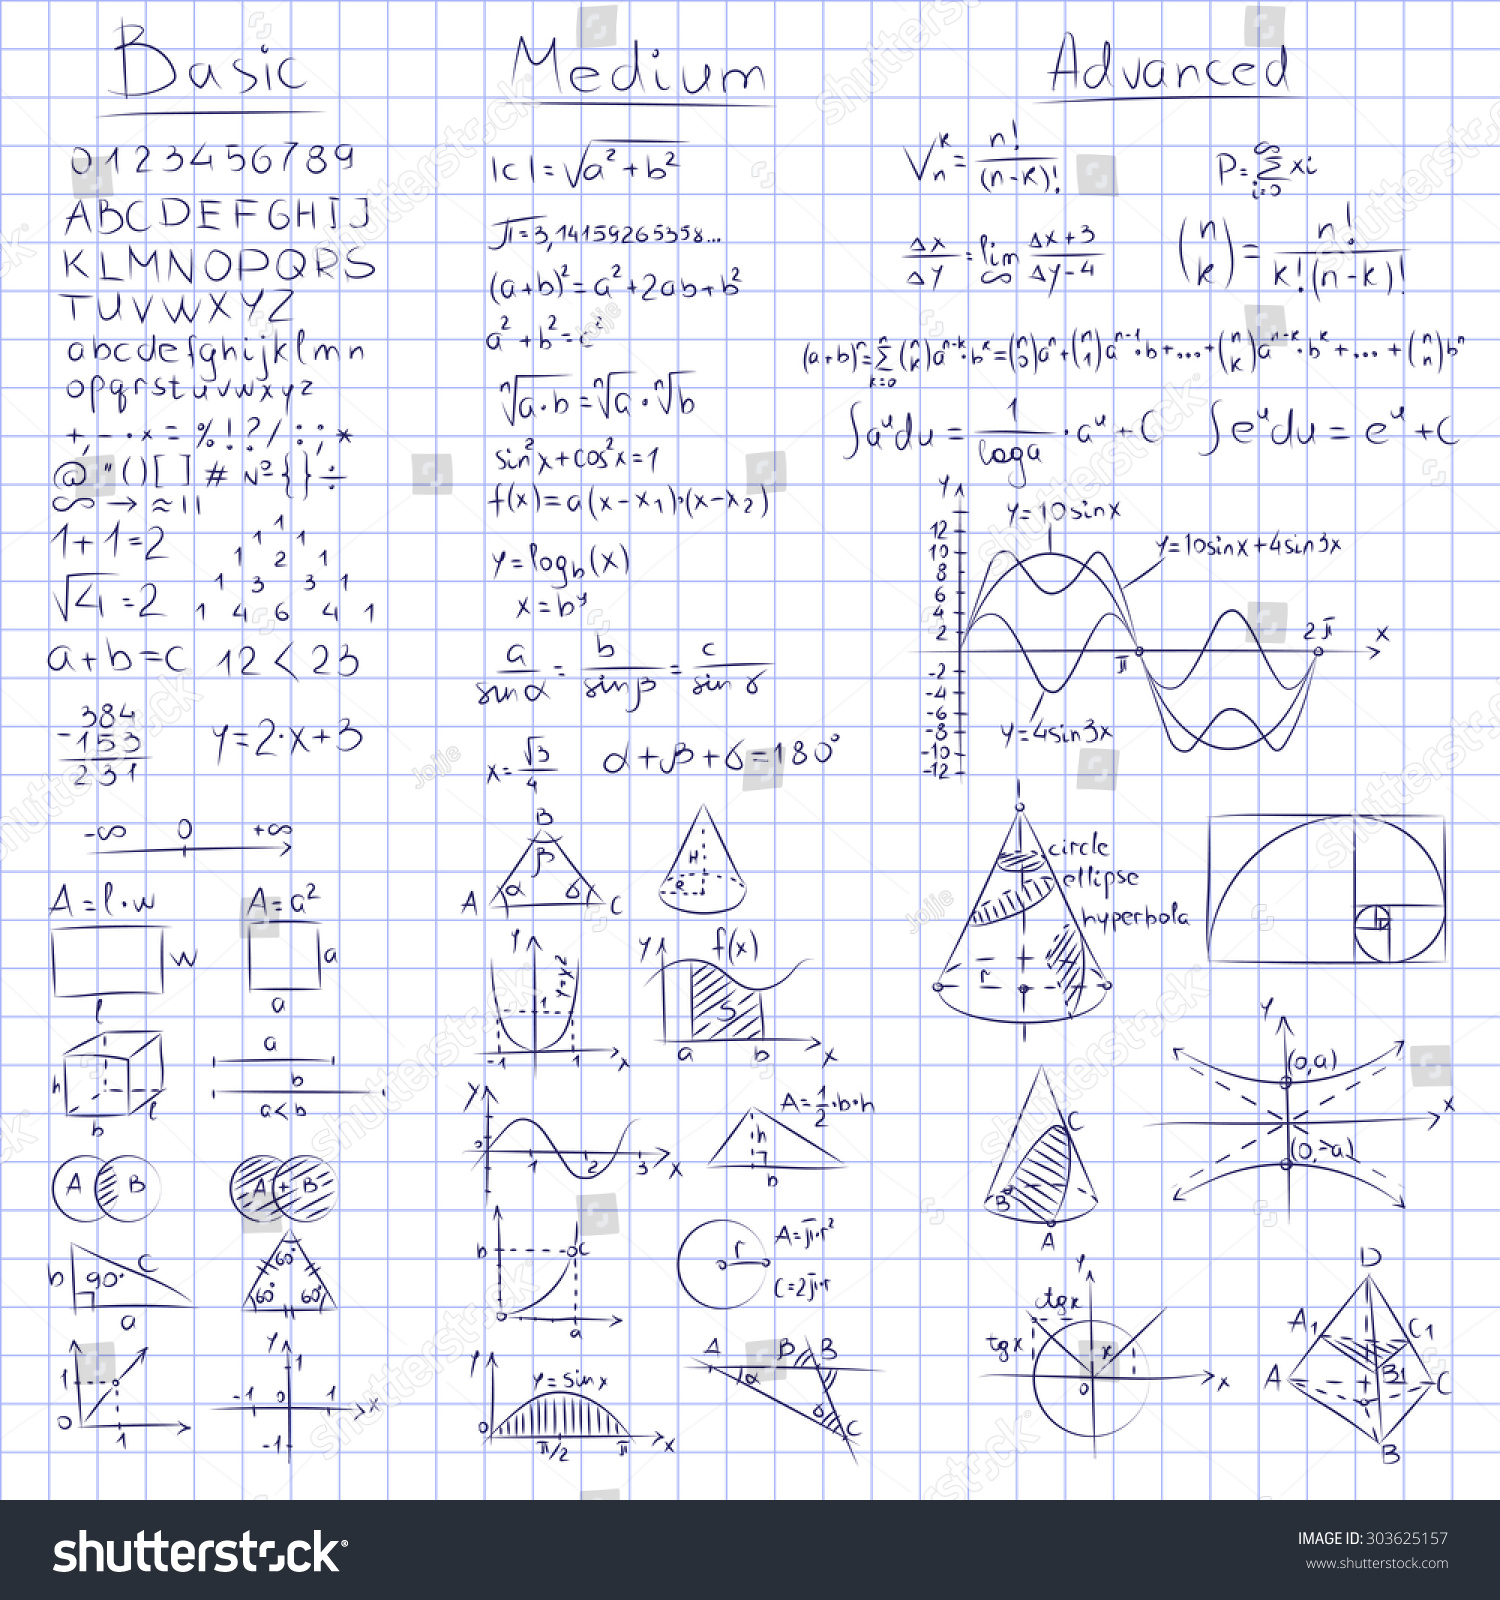 mathematics notes Homework help in basic math and pre-algebra from cliffsnotes need help with your basic math and pre-algebra homework and tests these article can help with un.